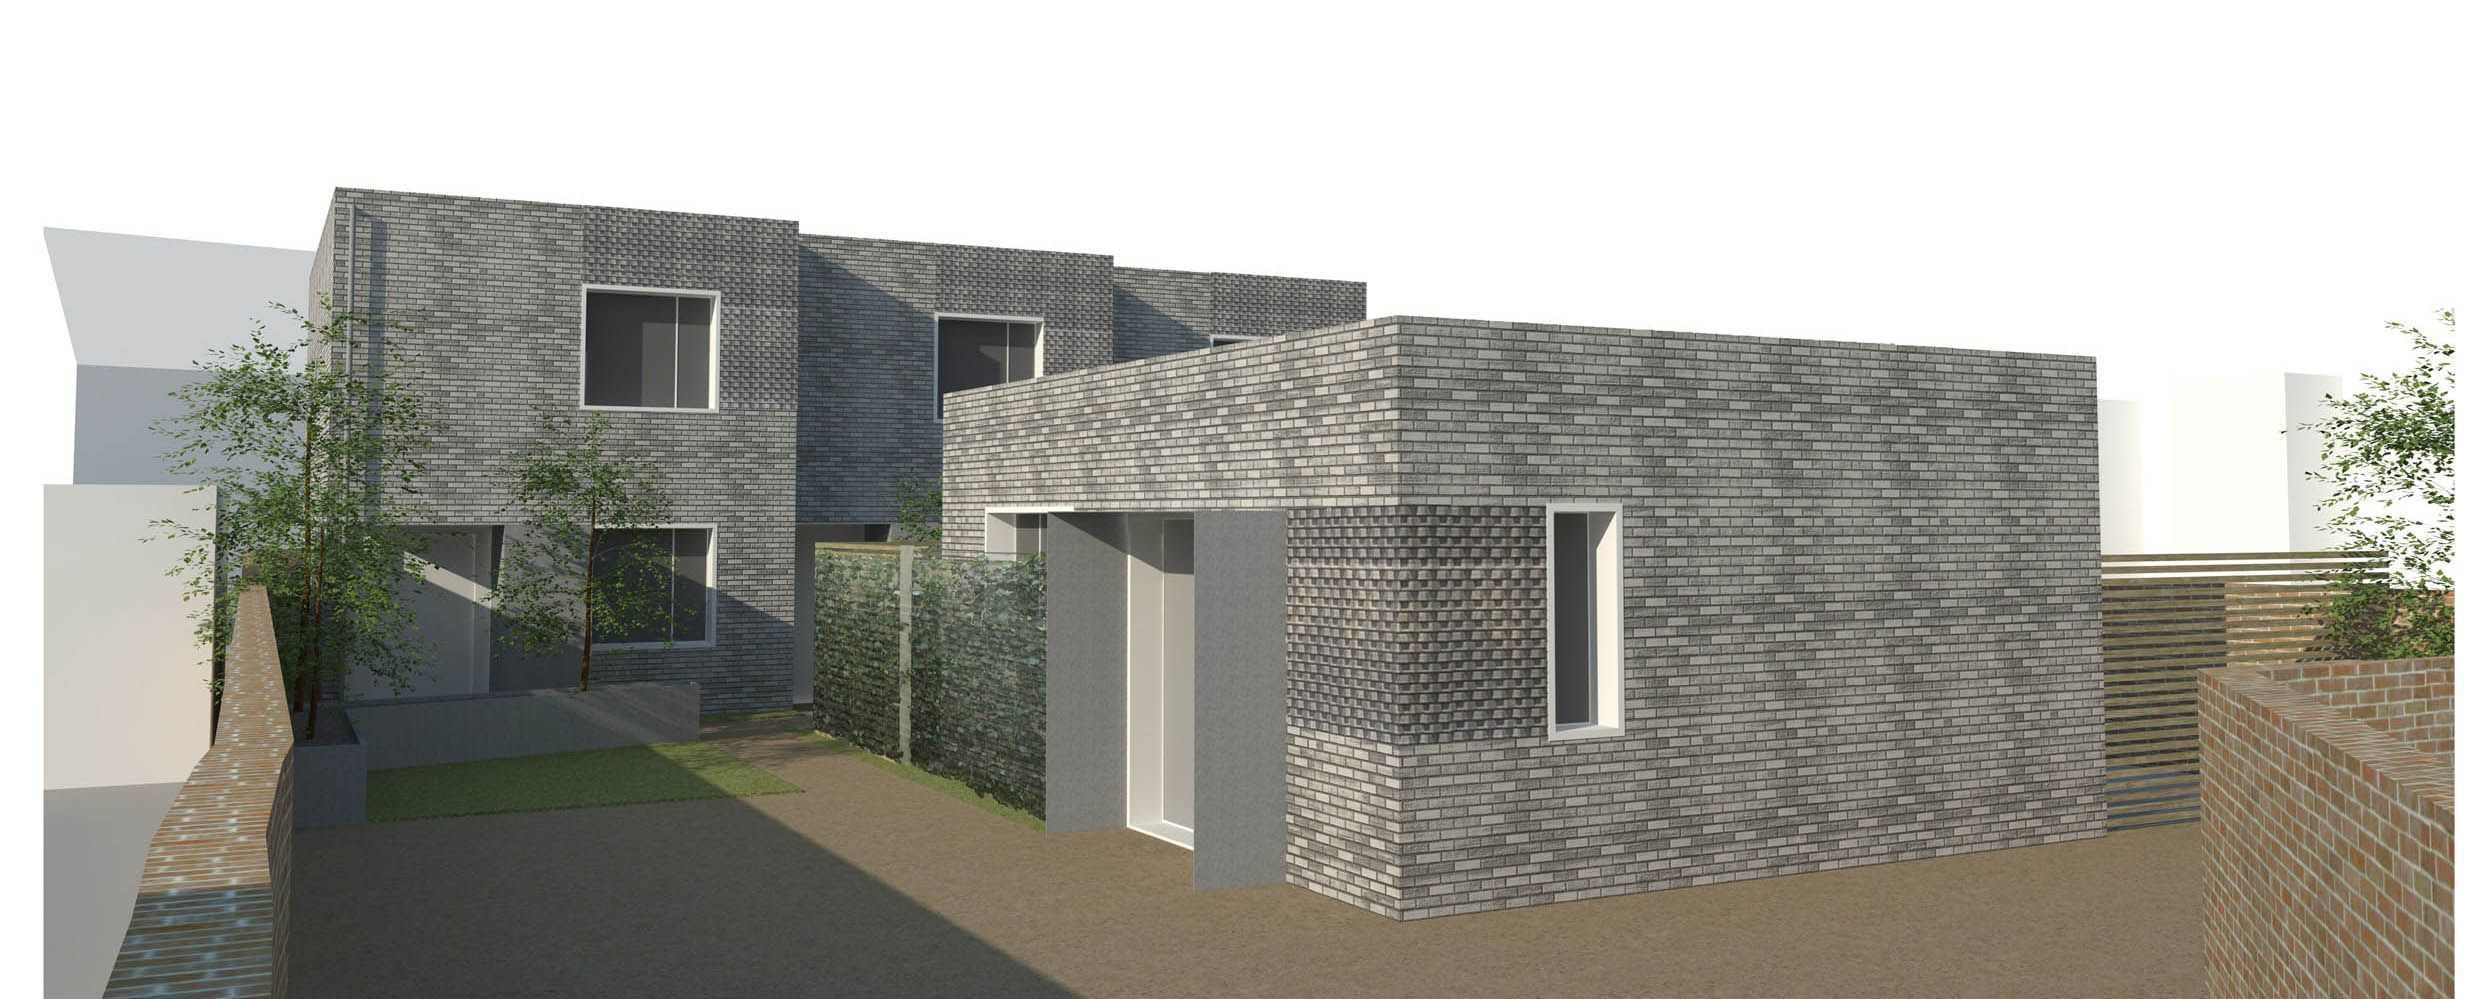 New build development project for a row of 3, 3 bedroom terrace houses and an individual 4 bed home in South East London.